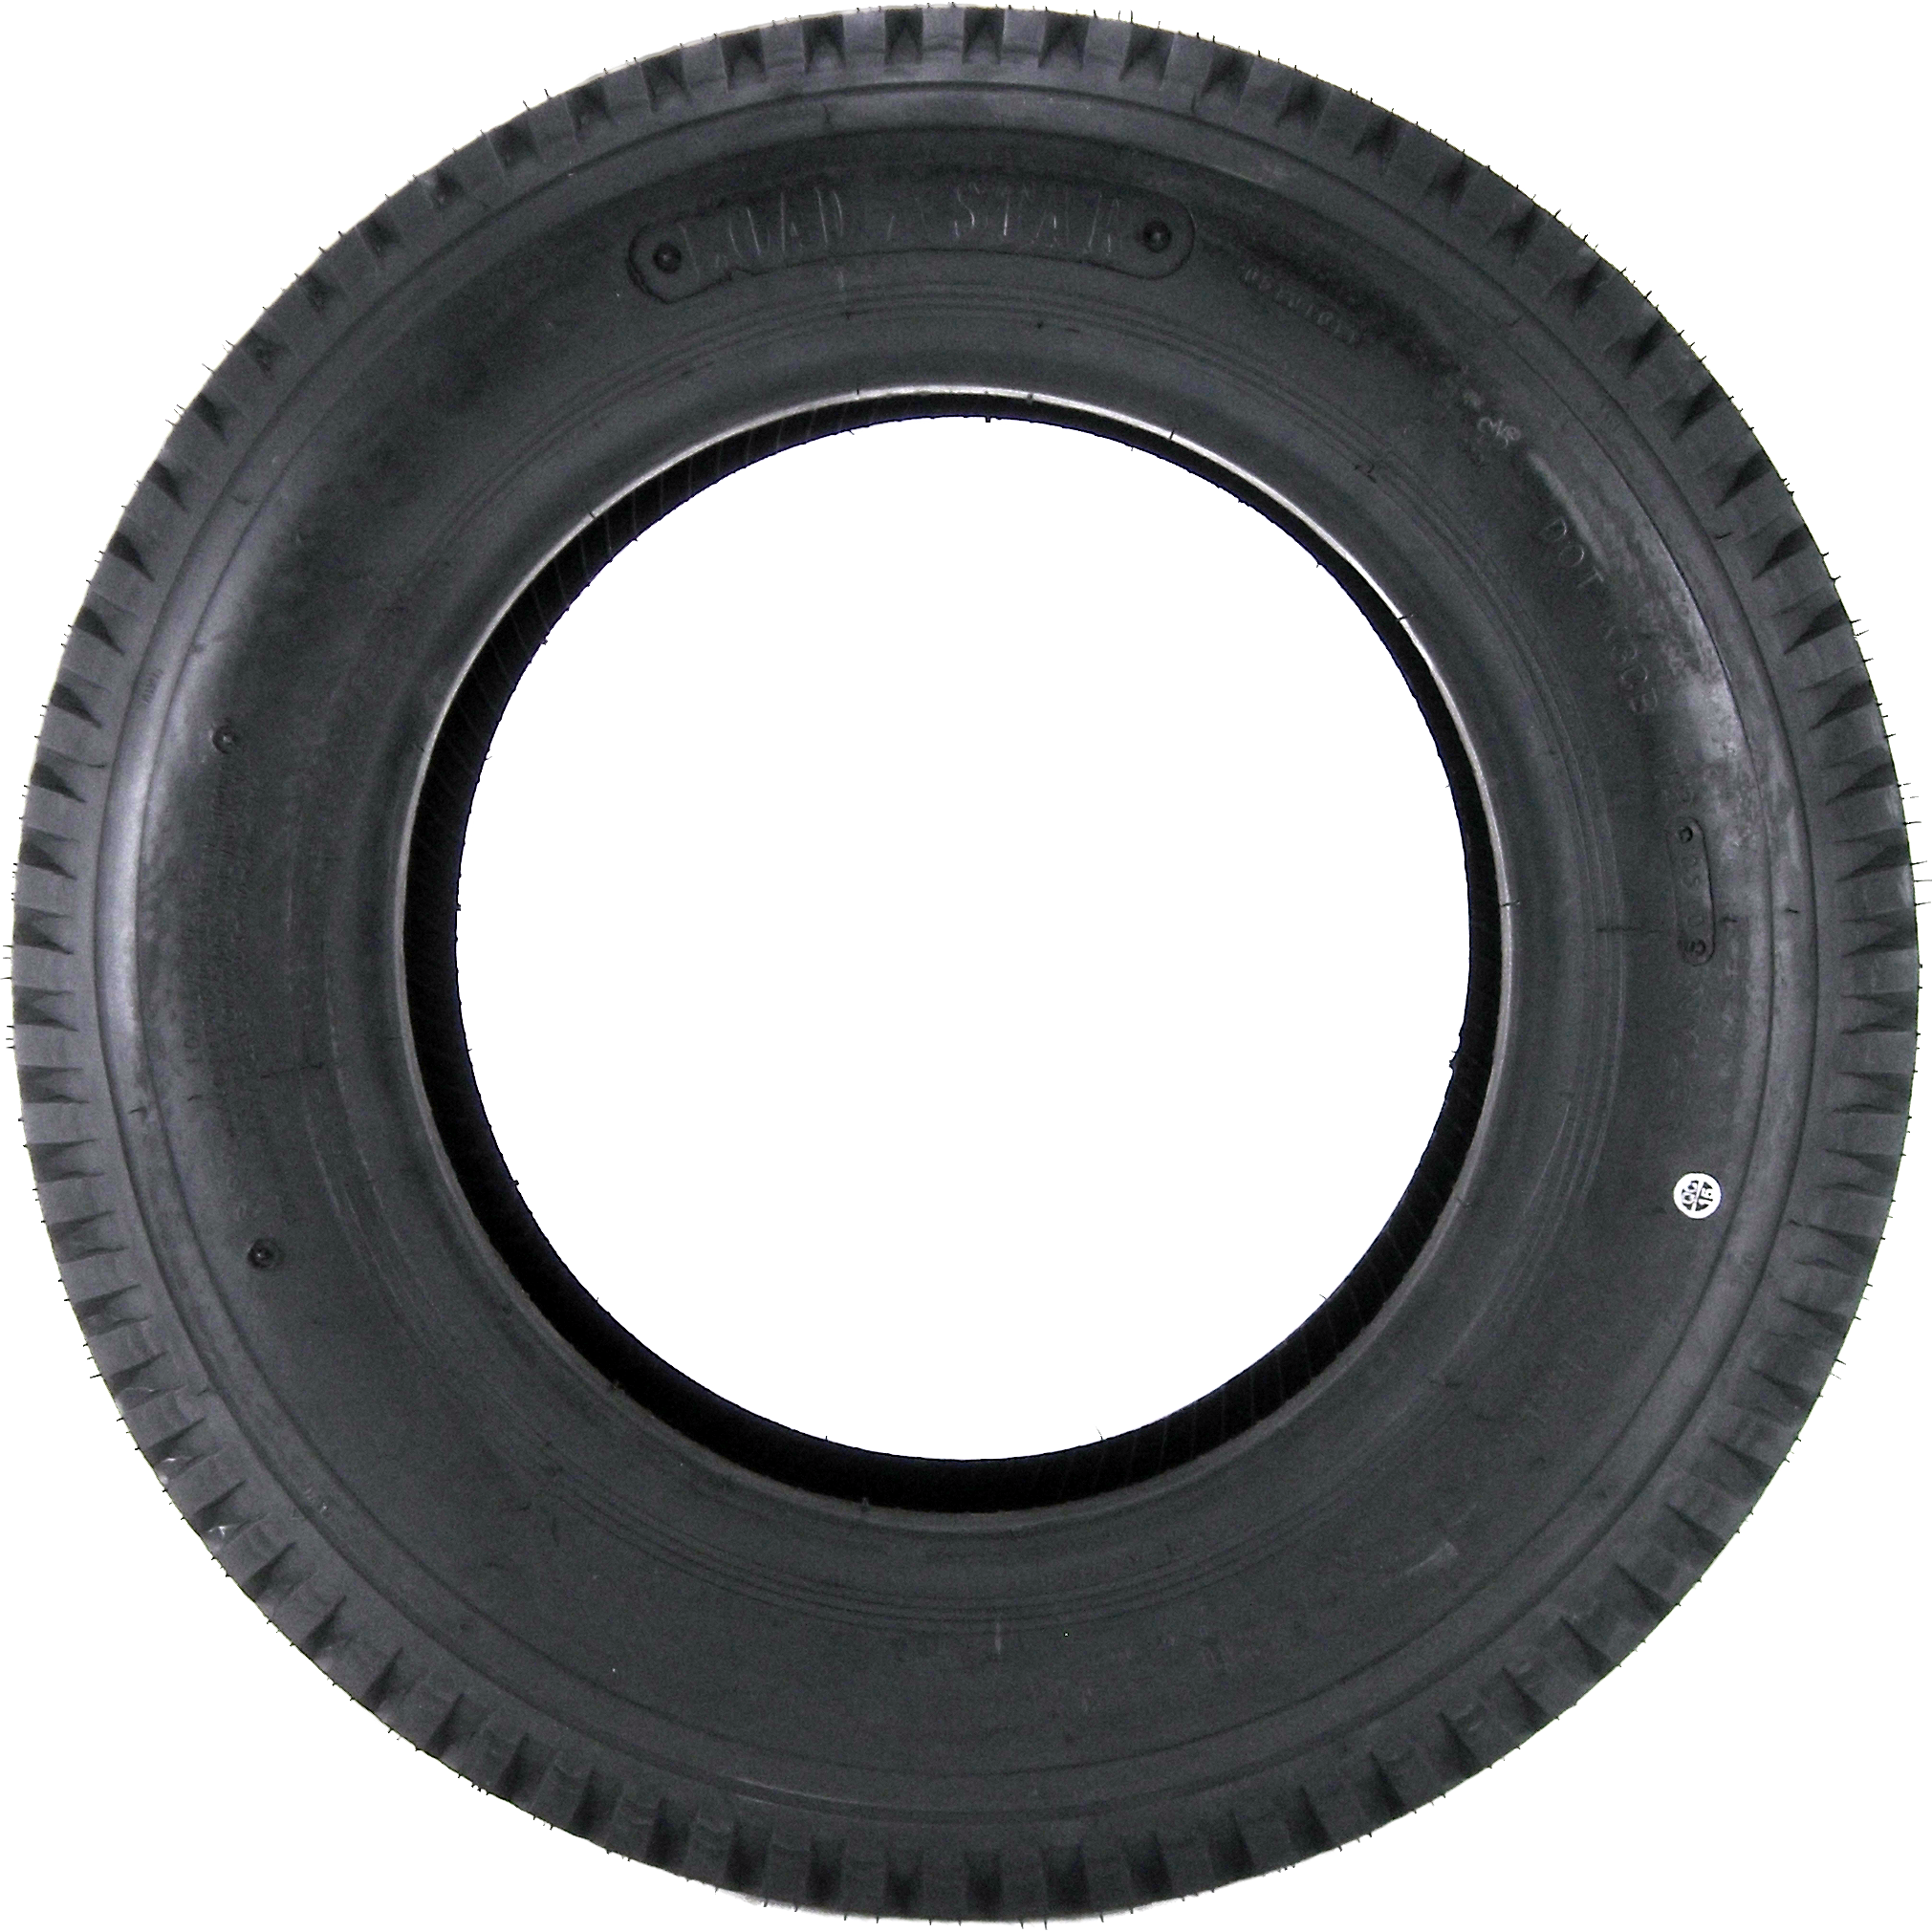 Truck tire png. Images free download